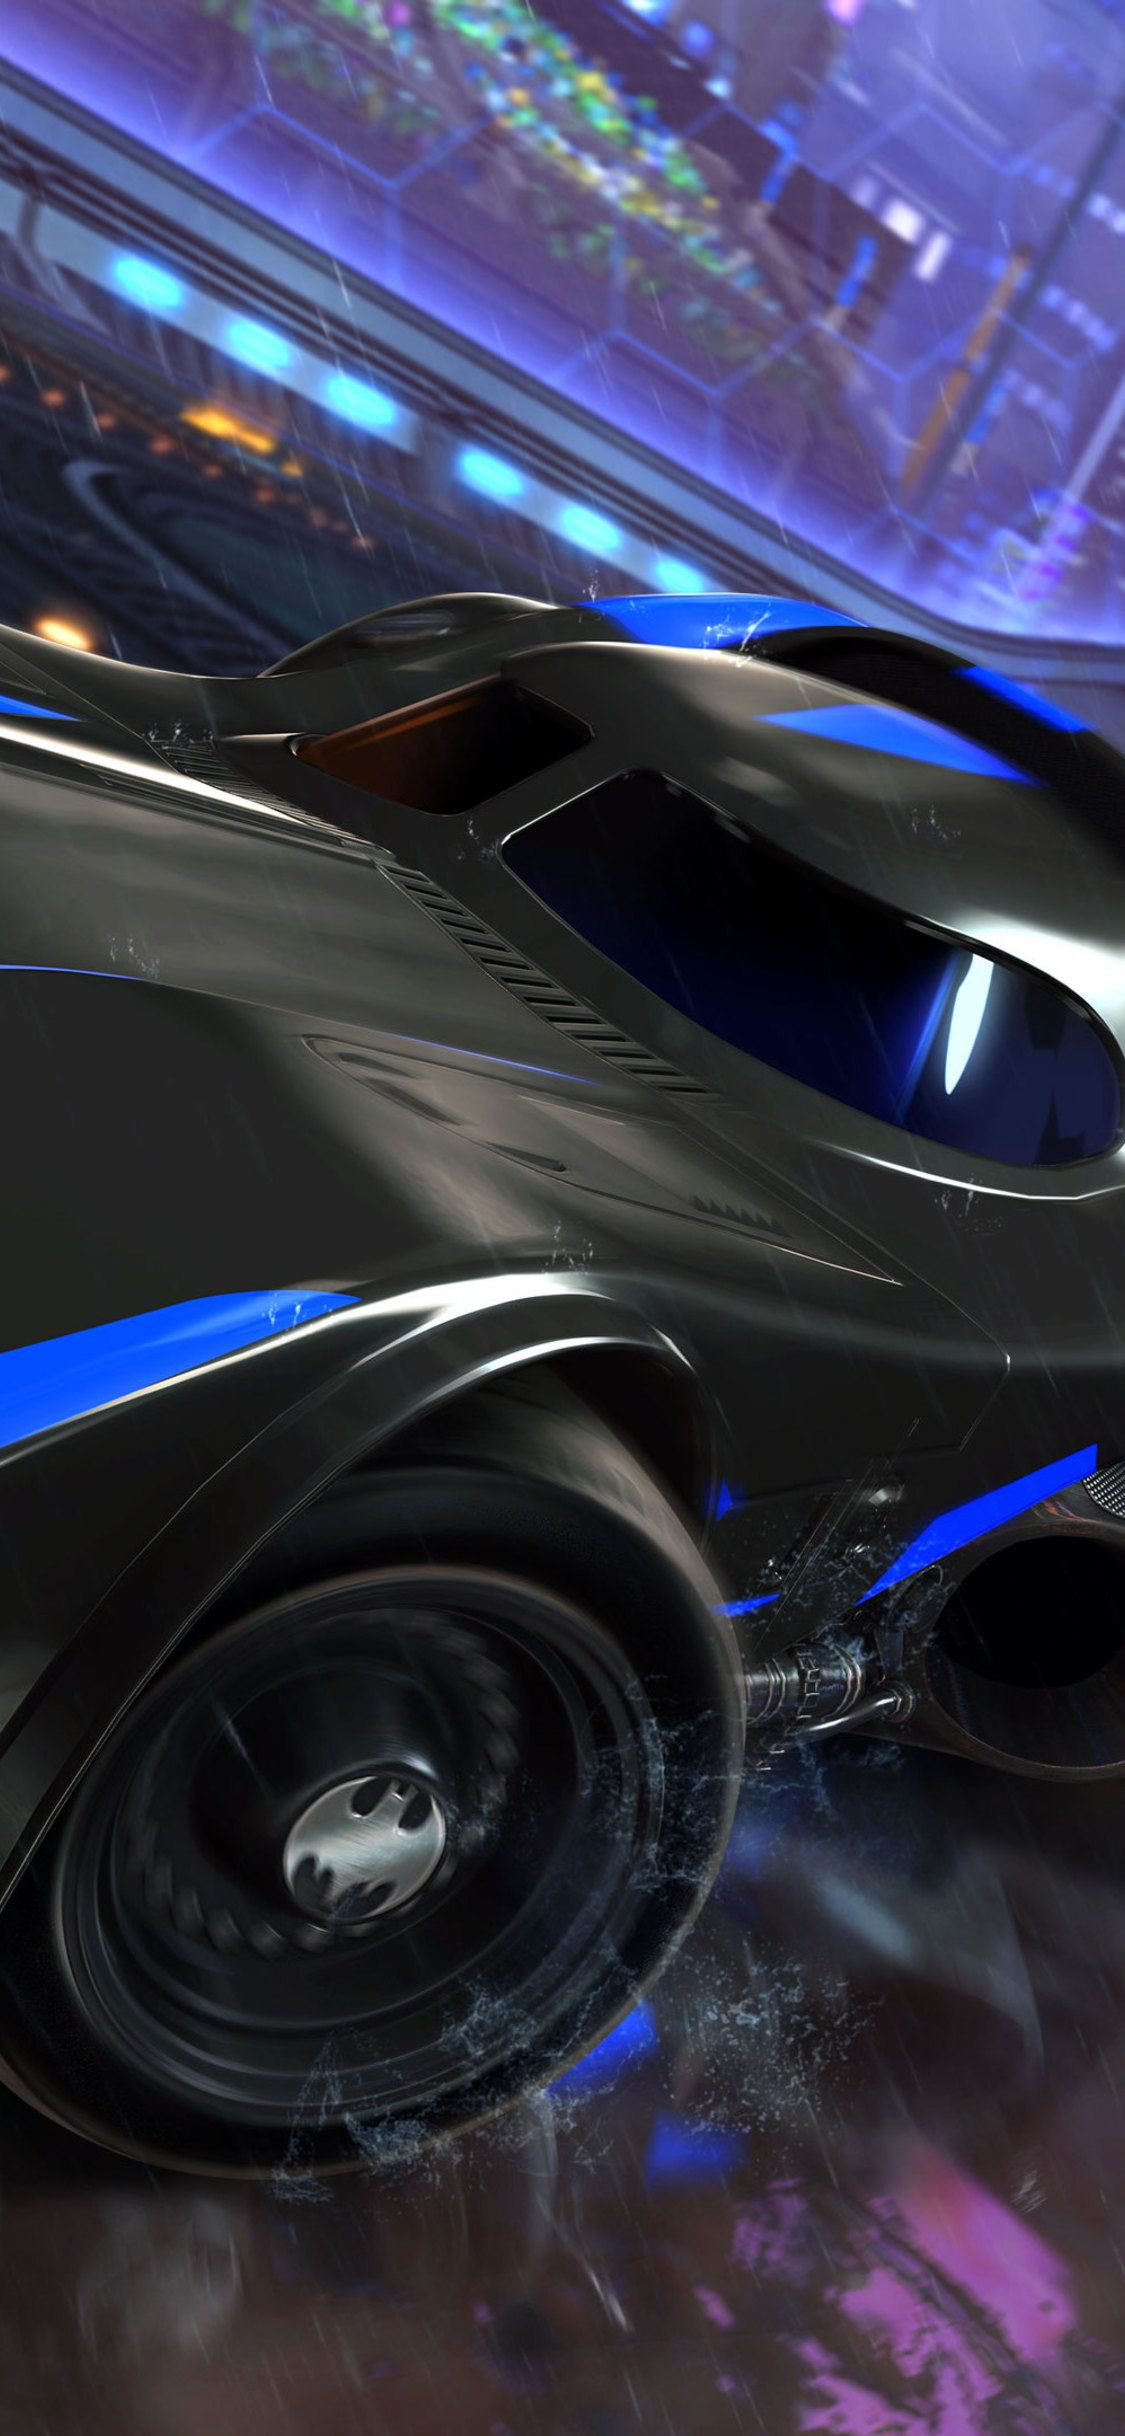 1125x2436 Batmobile Rocket League Dlc 4k Iphone Xs Iphone 10 Iphone X Hd 4k Wallpapers Images Backgrounds Ph In 2020 Rocket League Wallpaper Rocket League Batmobile